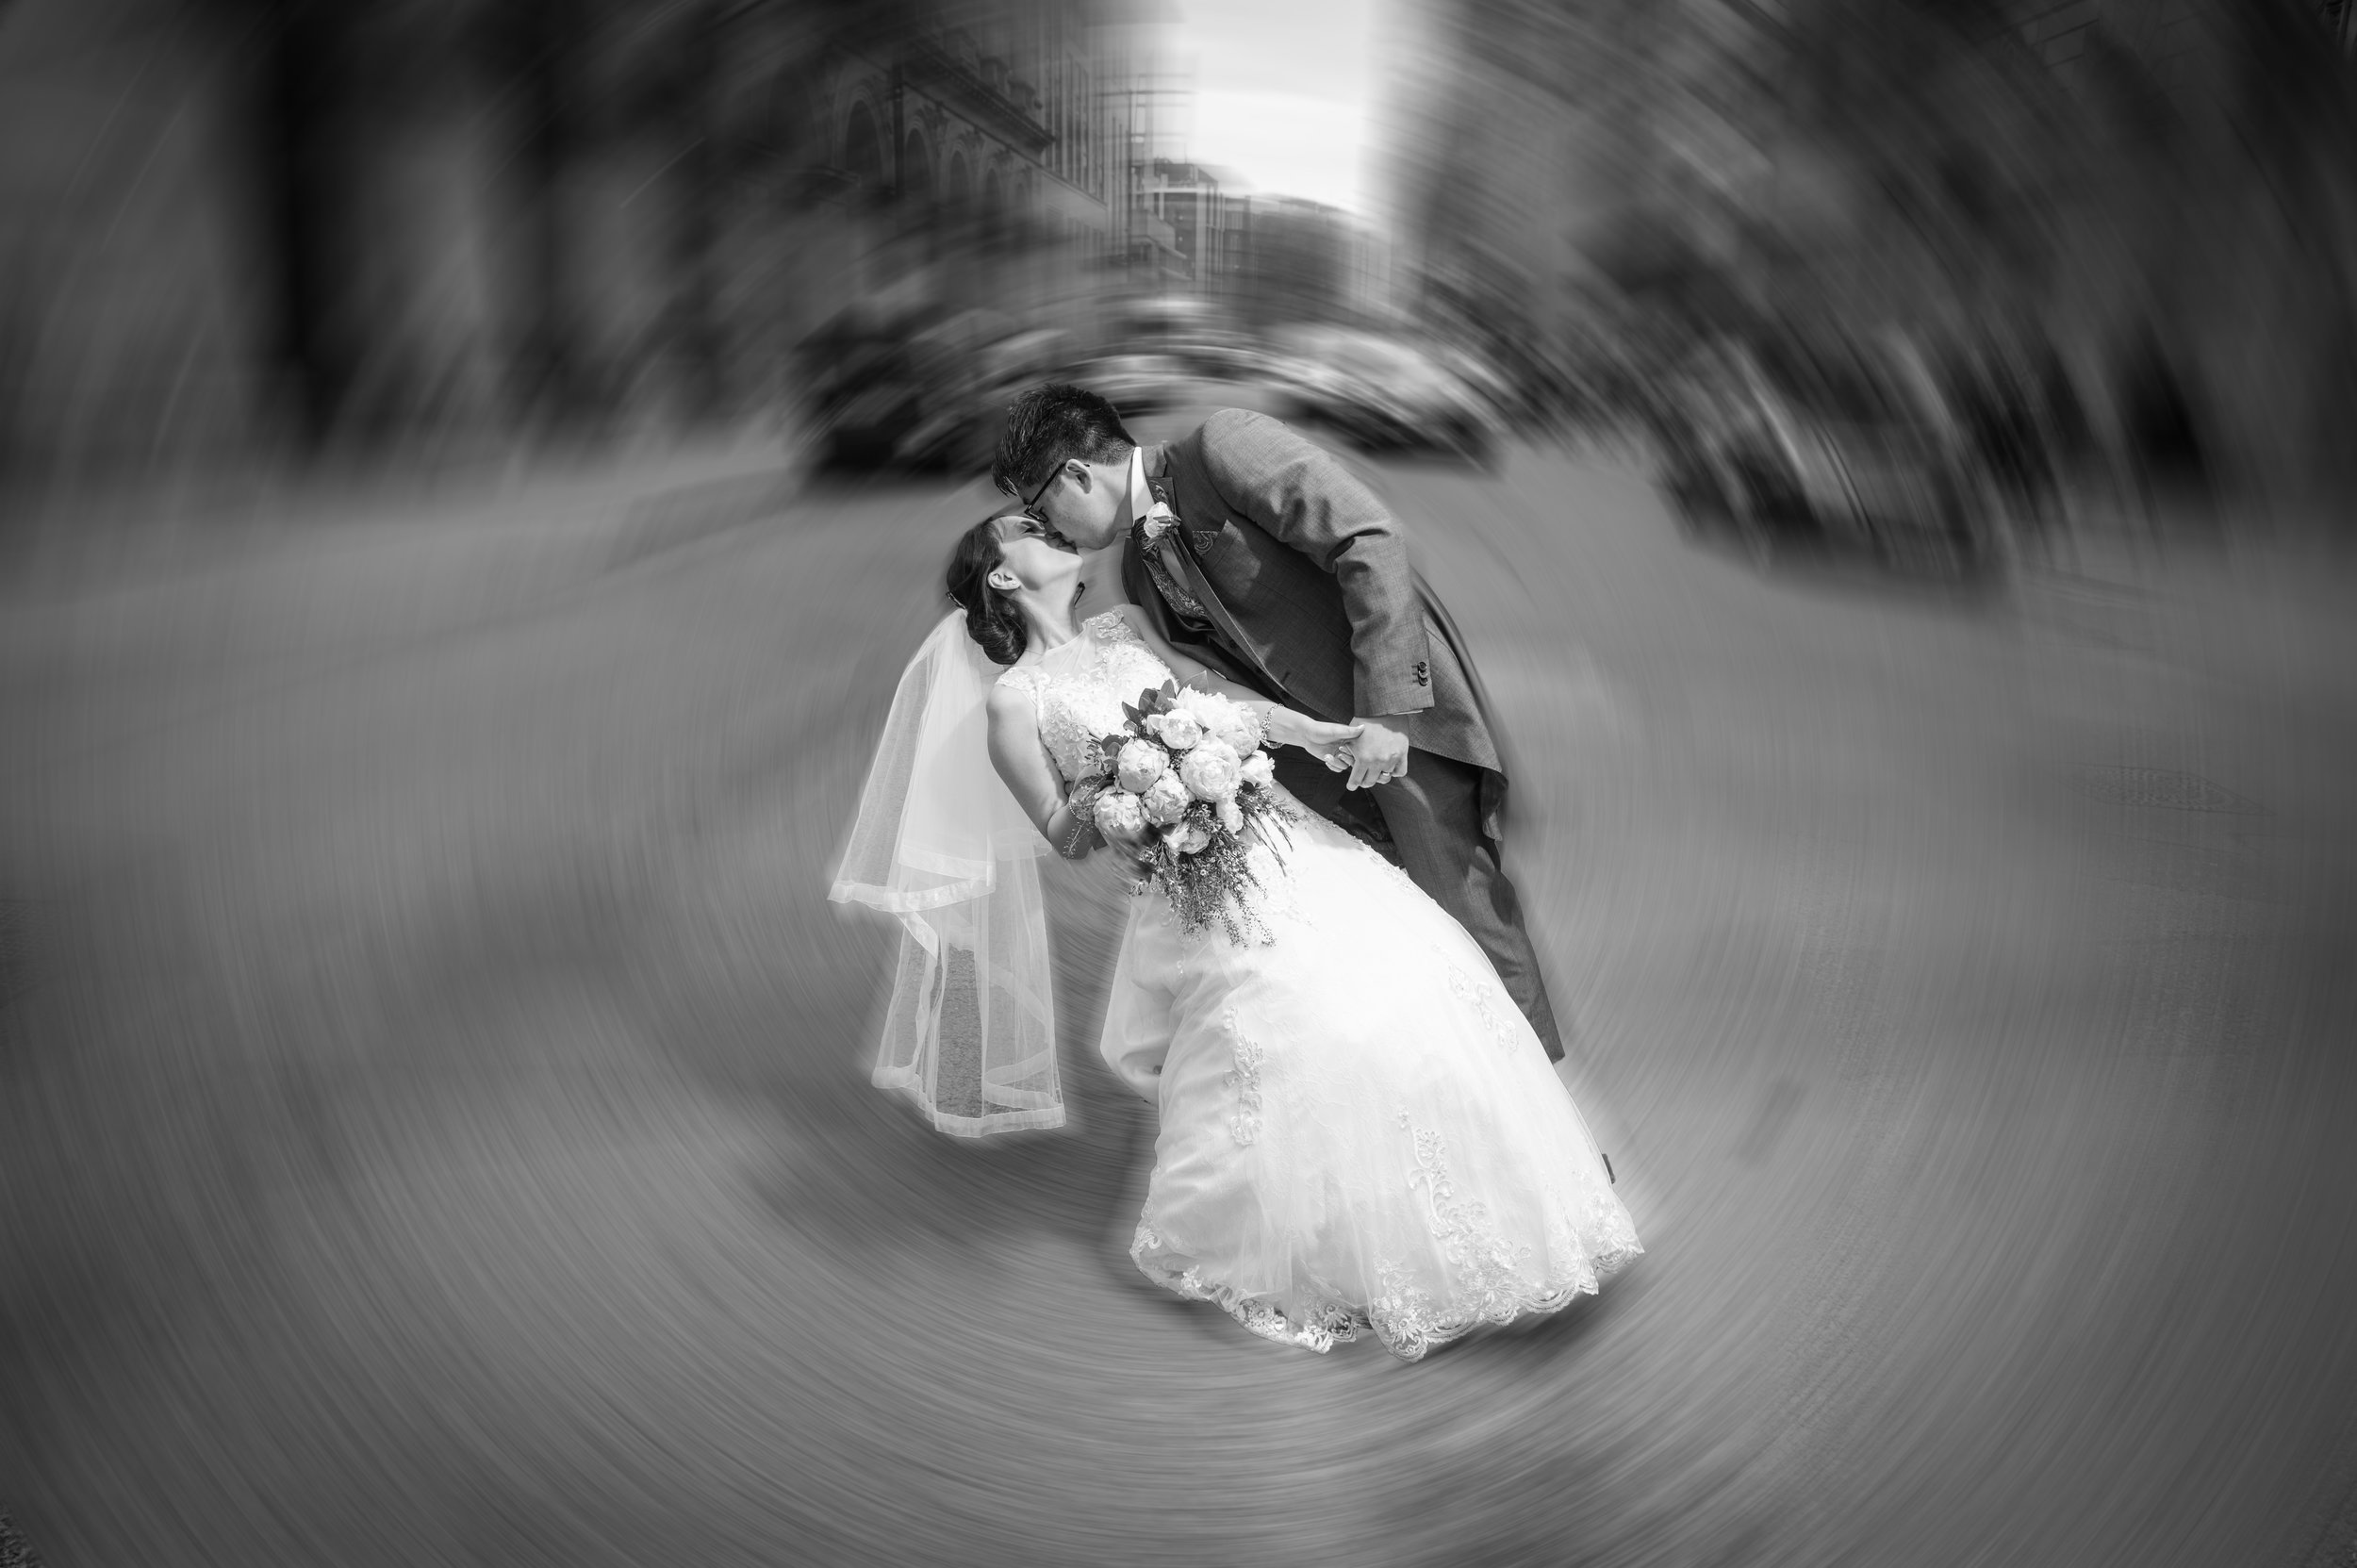 Mr & Mrs Ho 3353-Edit.jpg